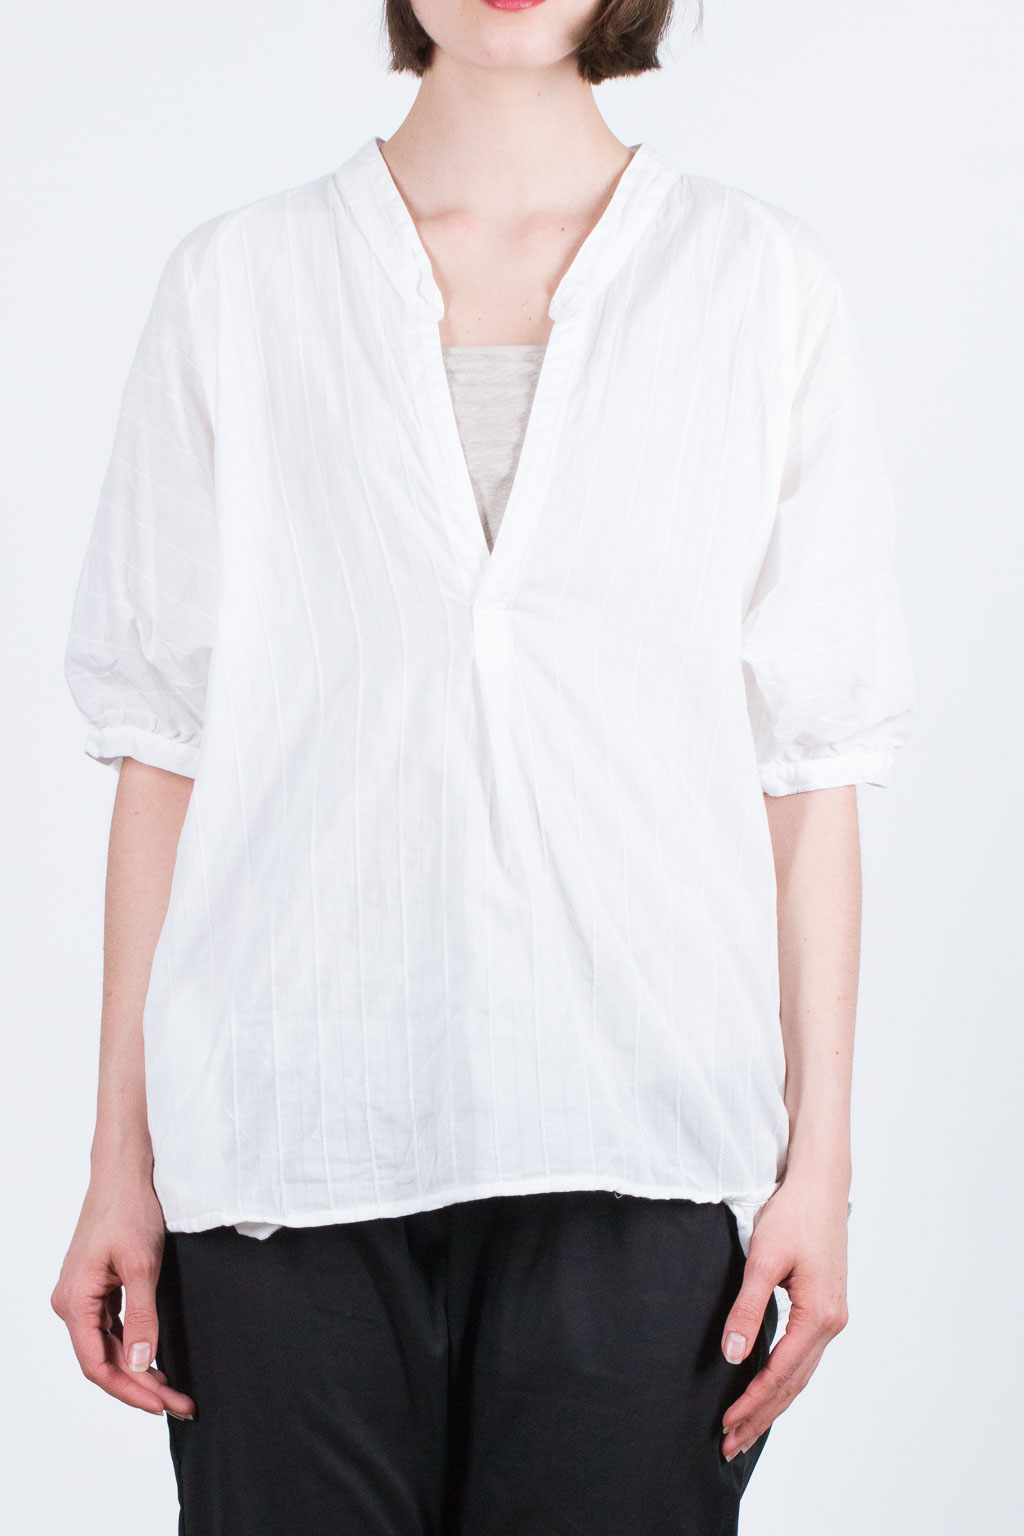 Santorini Cotton Shirt - White